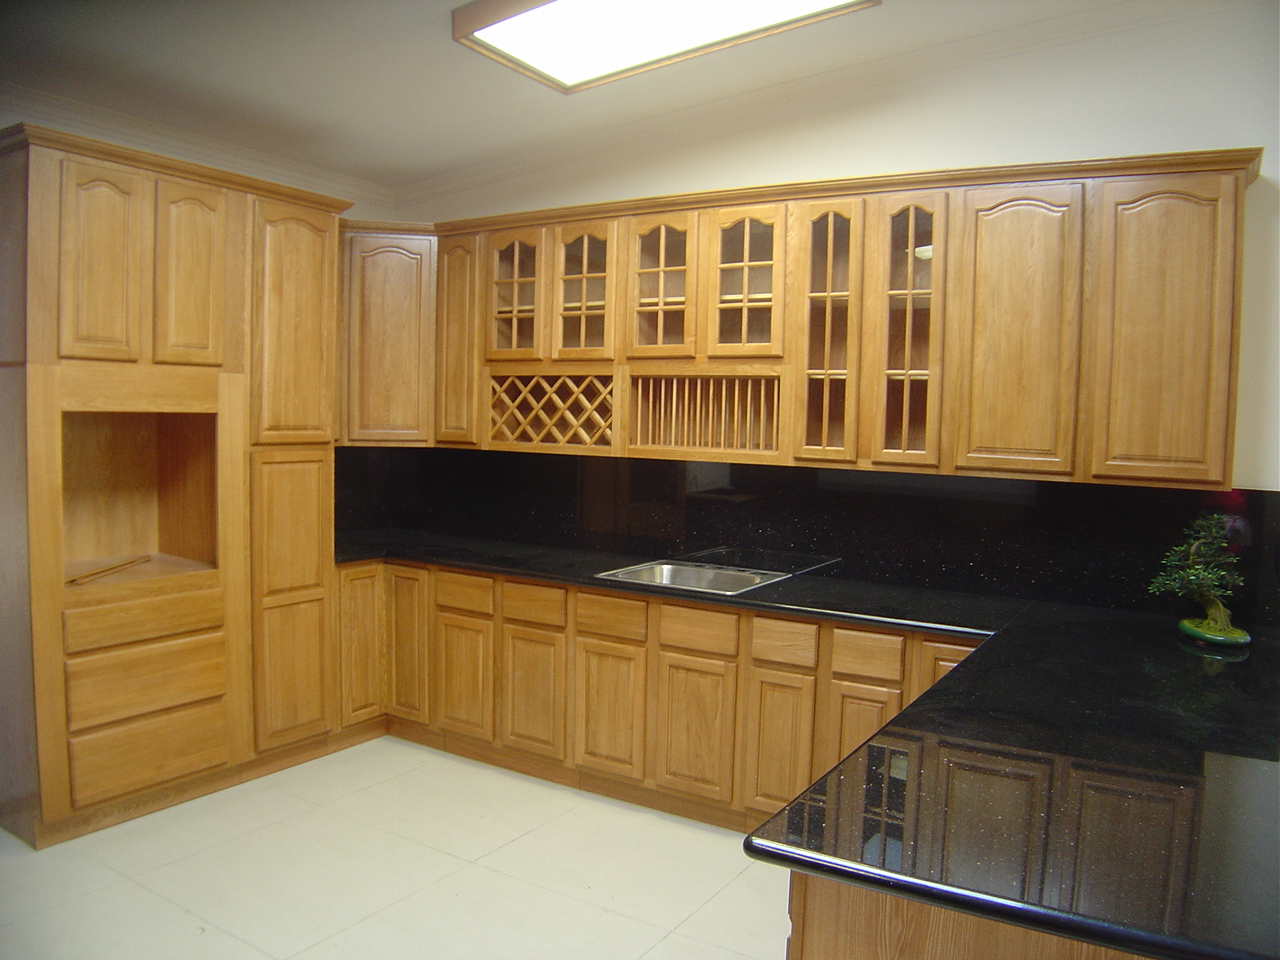 Oak kitchen cabinets for your interior kitchen minimalist - Designs of kitchen ...